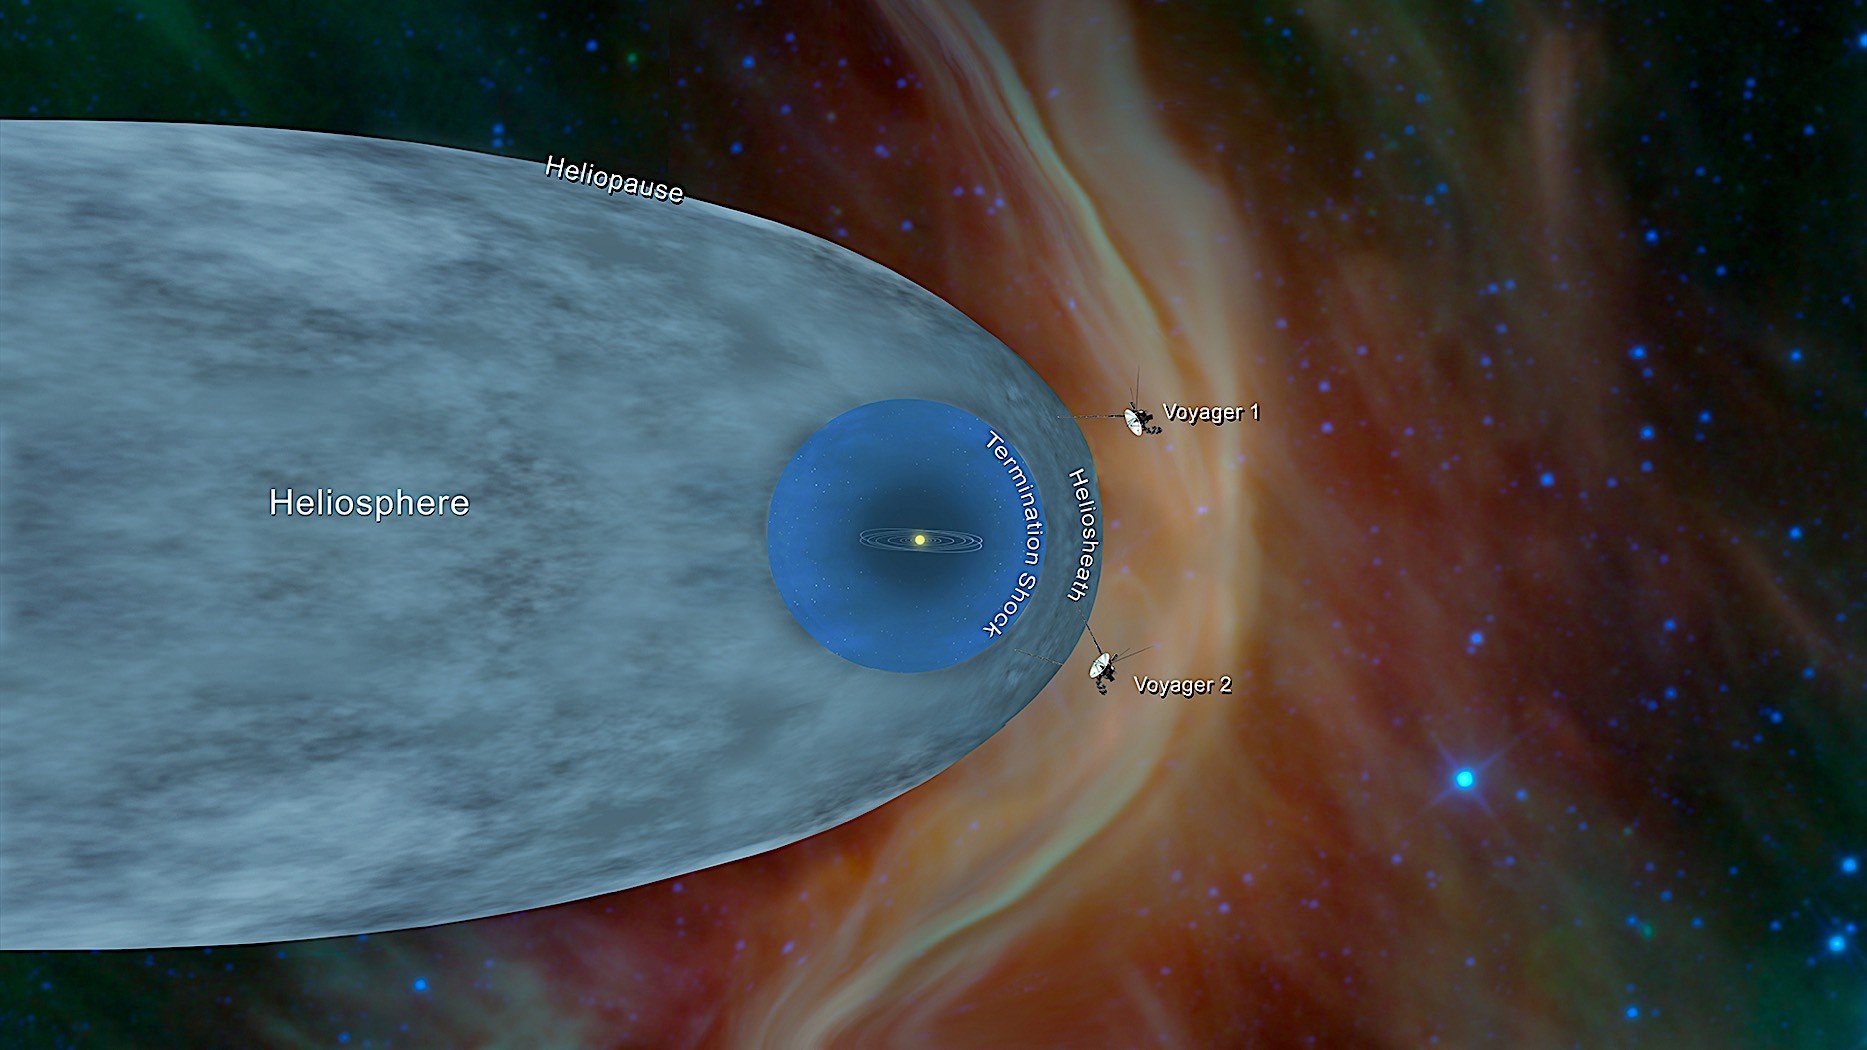 Voyager 2 exits the heliosphere